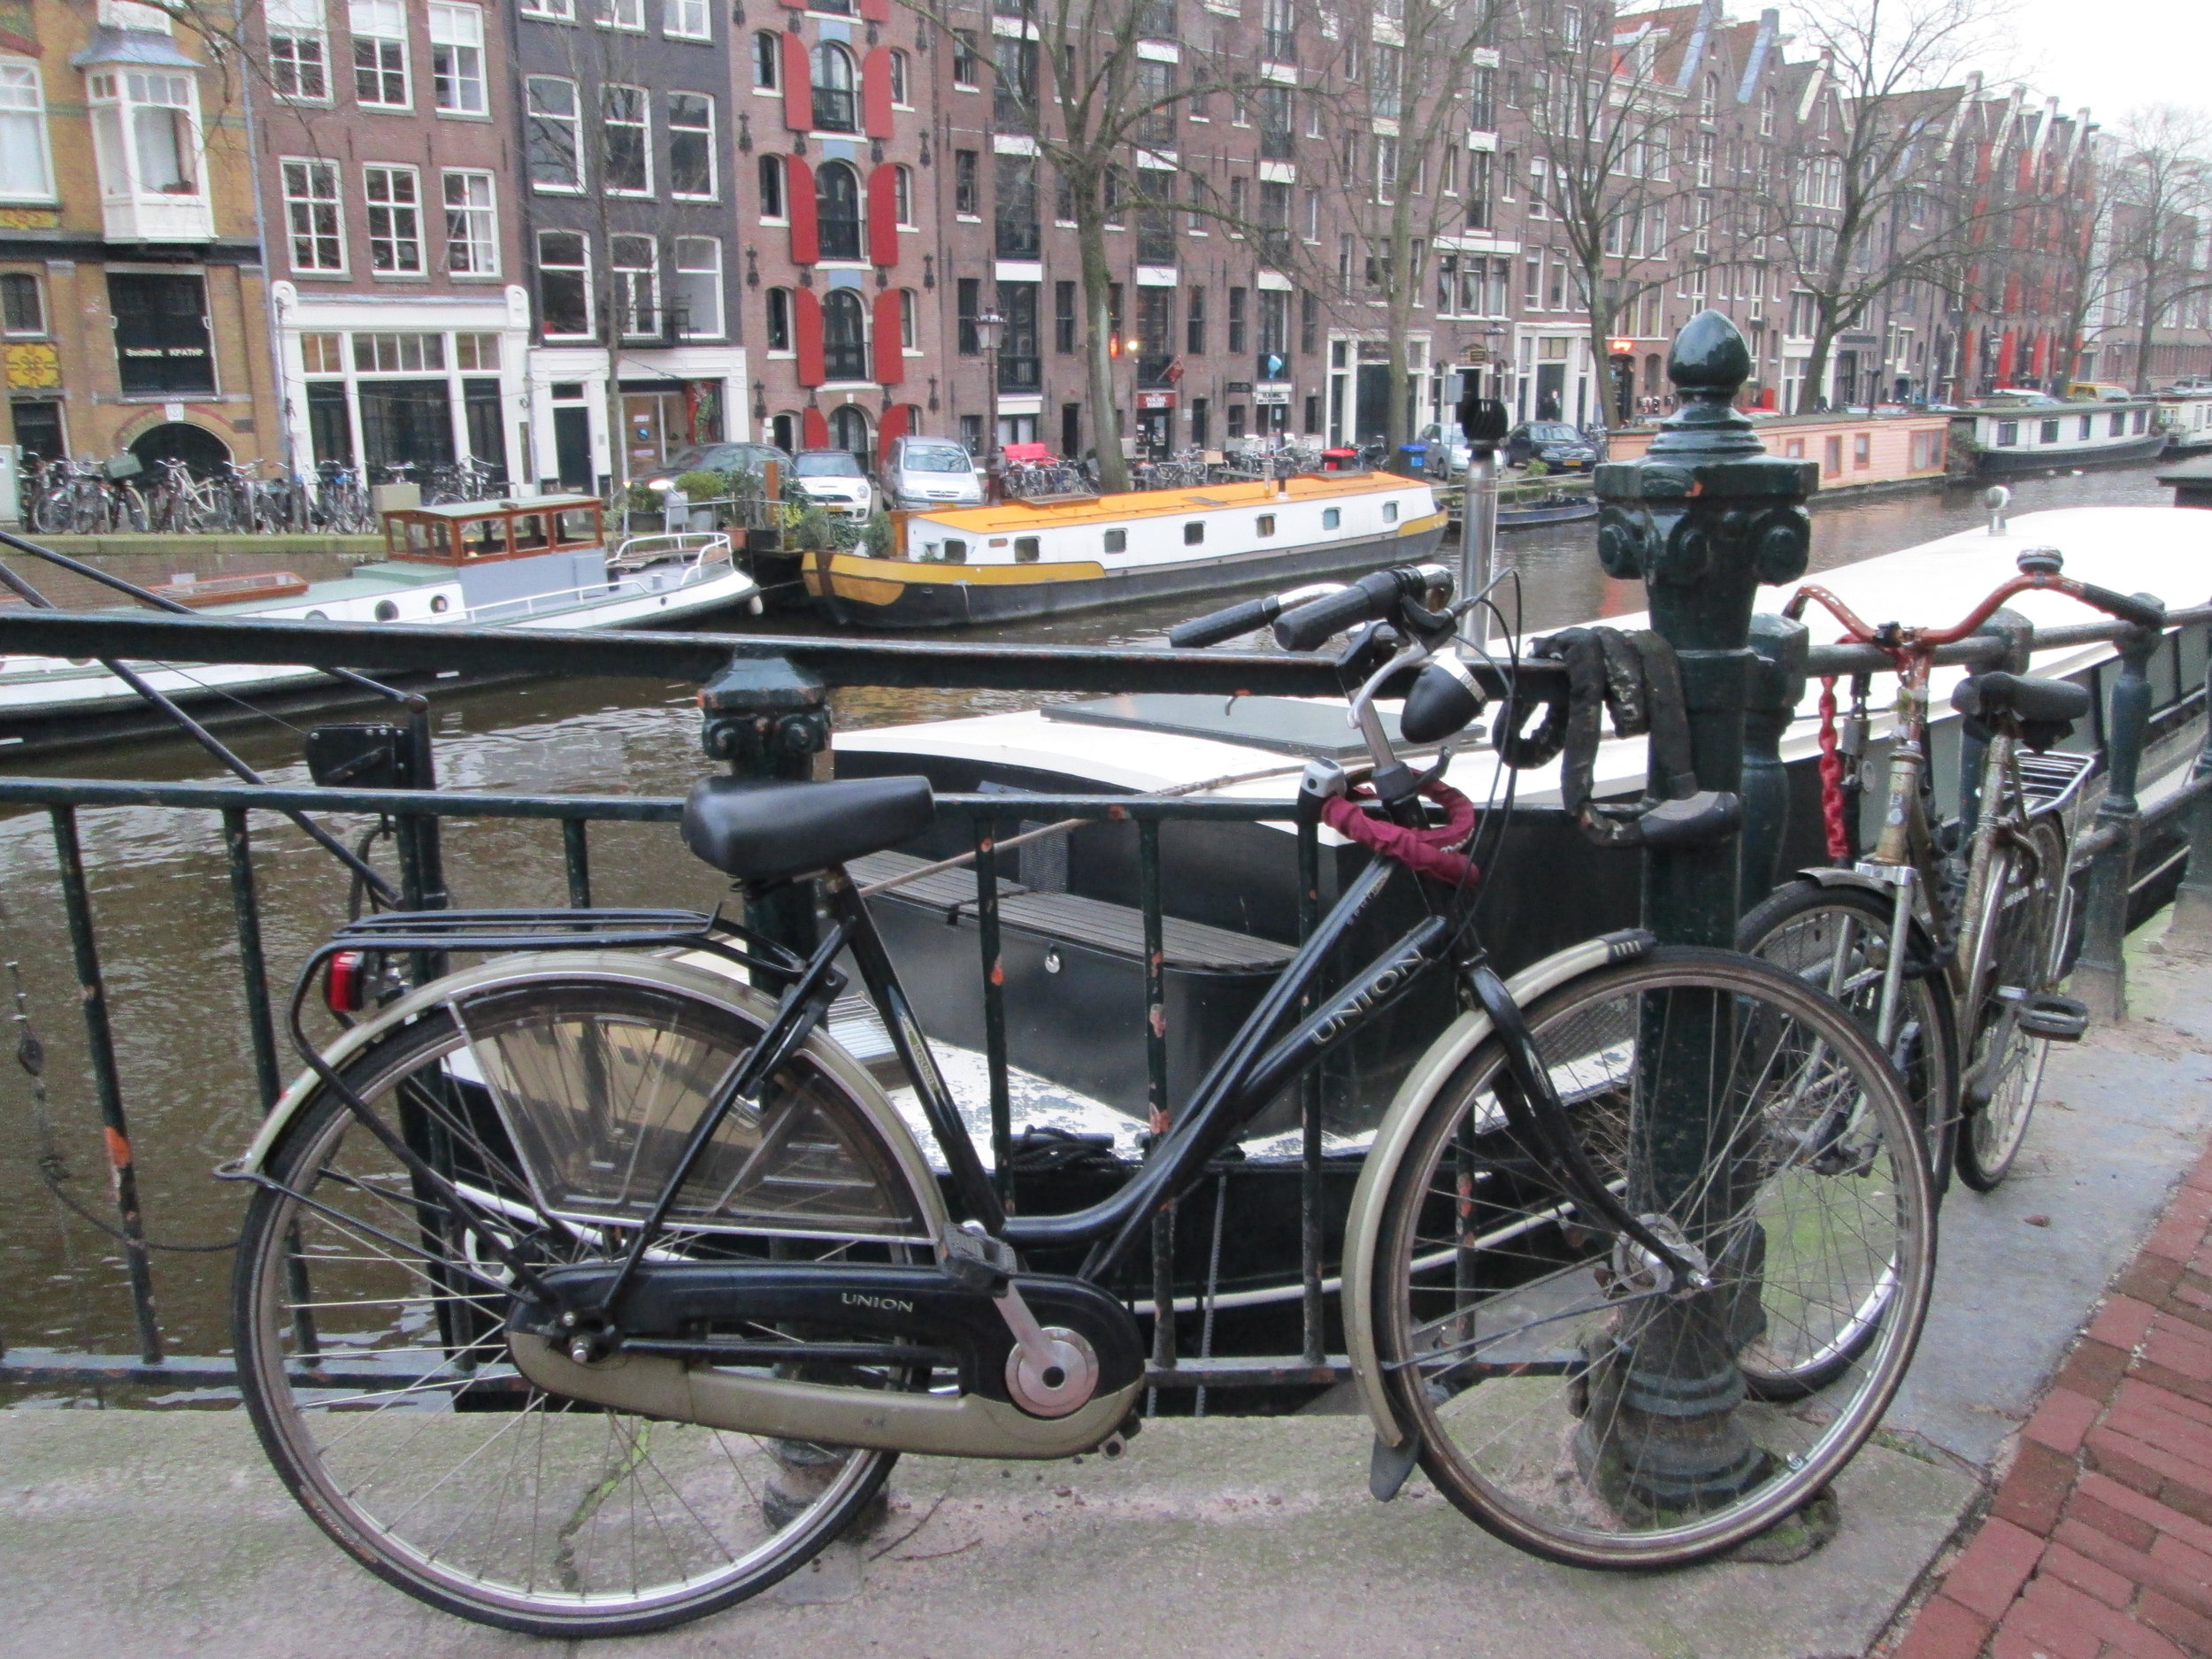 My beautiful (first) bike in Amsterdam.